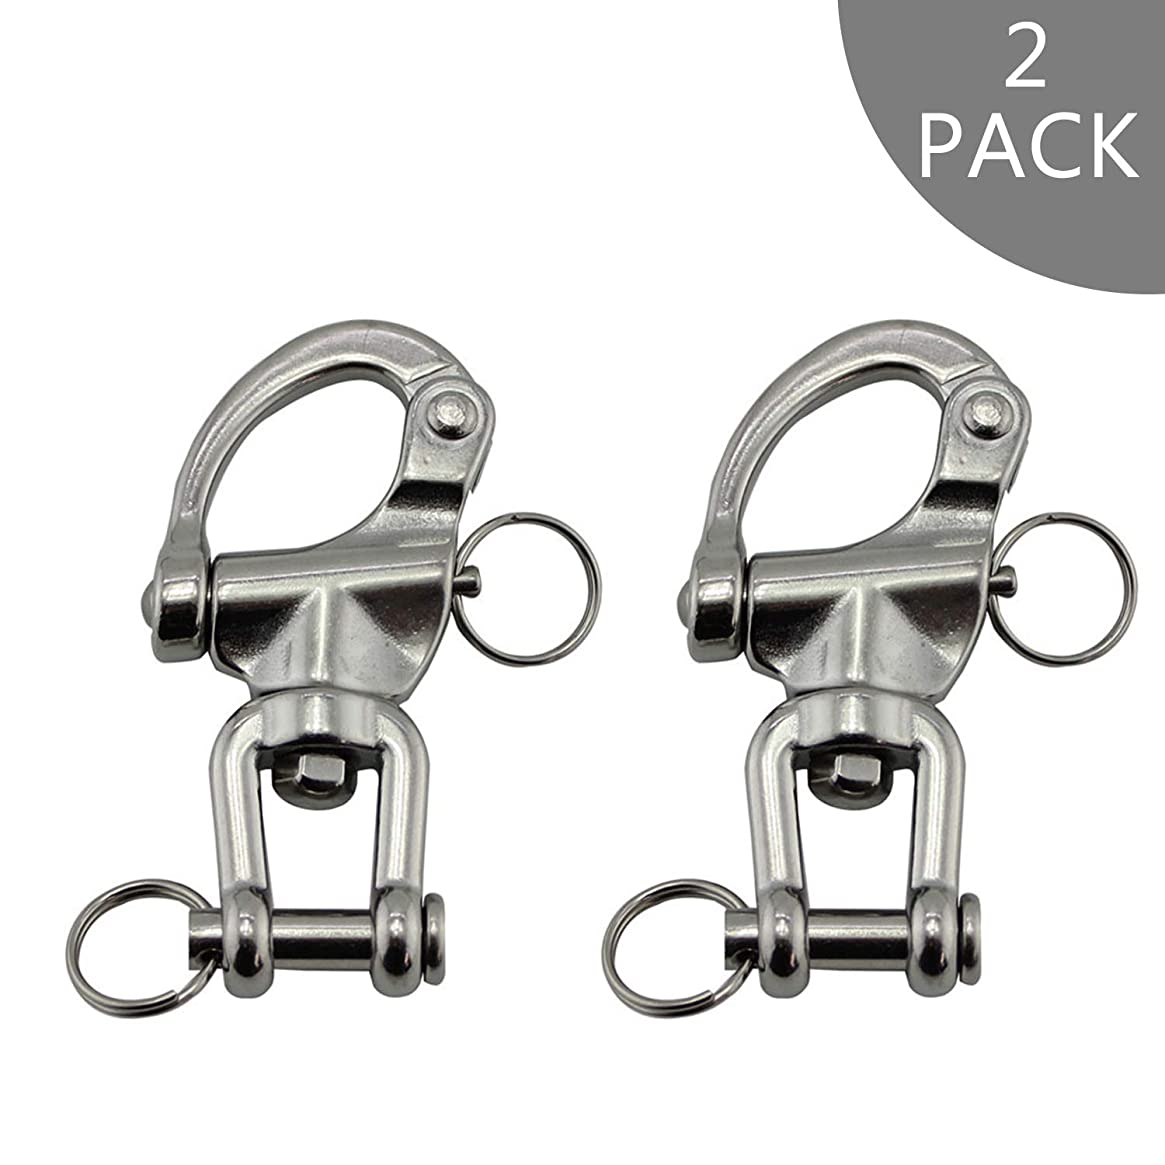 NRC&XRC Pair Jaw Swivel Snap Shackle 316 Stainless Steel for Sailboat Spinnaker Halyard &Diving